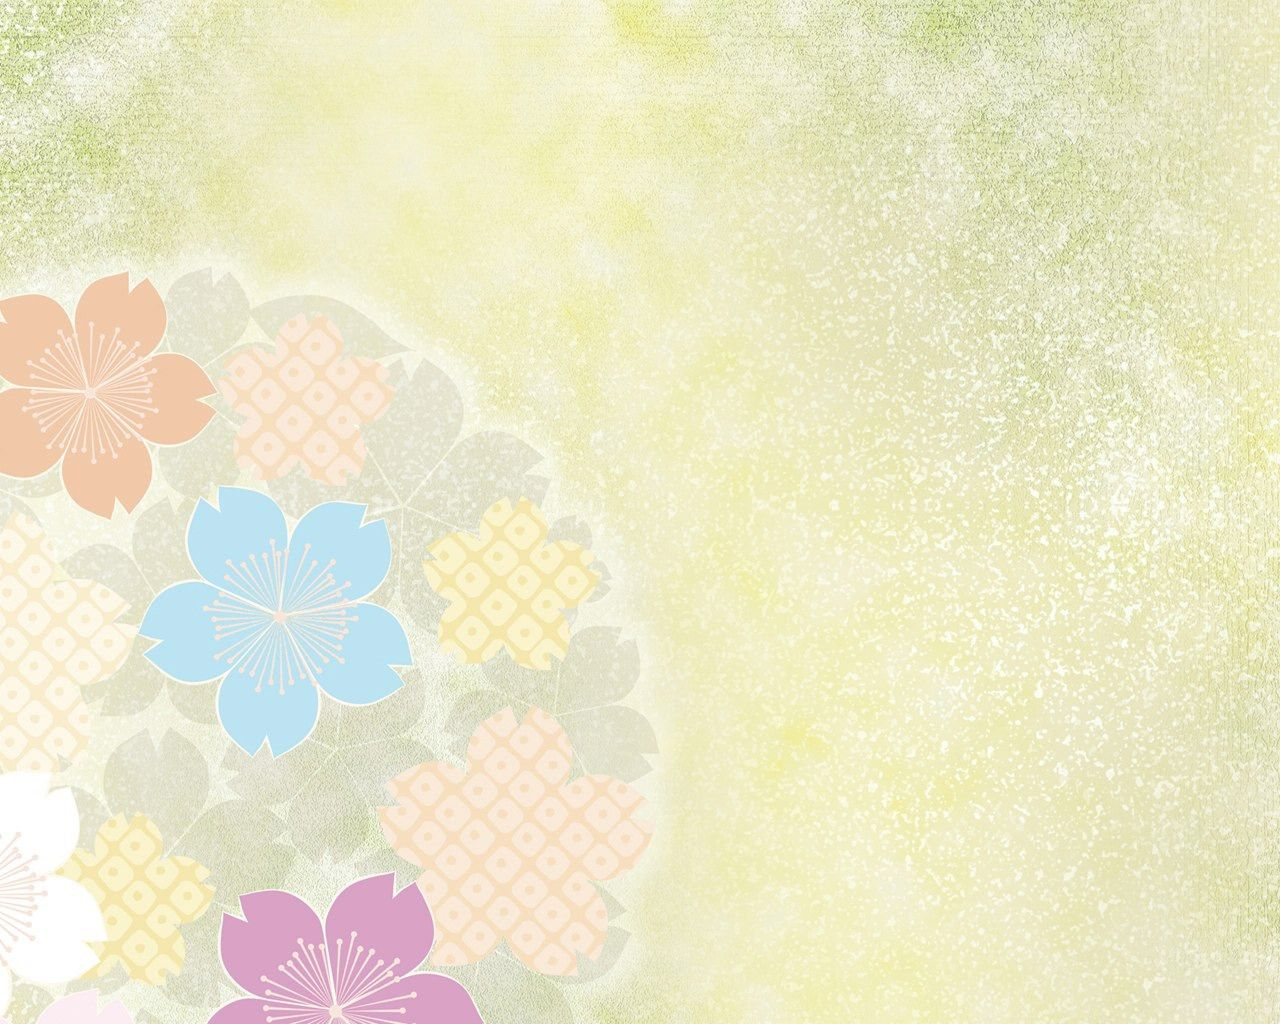 Free download Backgrounds clipart wallpaper cave 2 Clipartix.